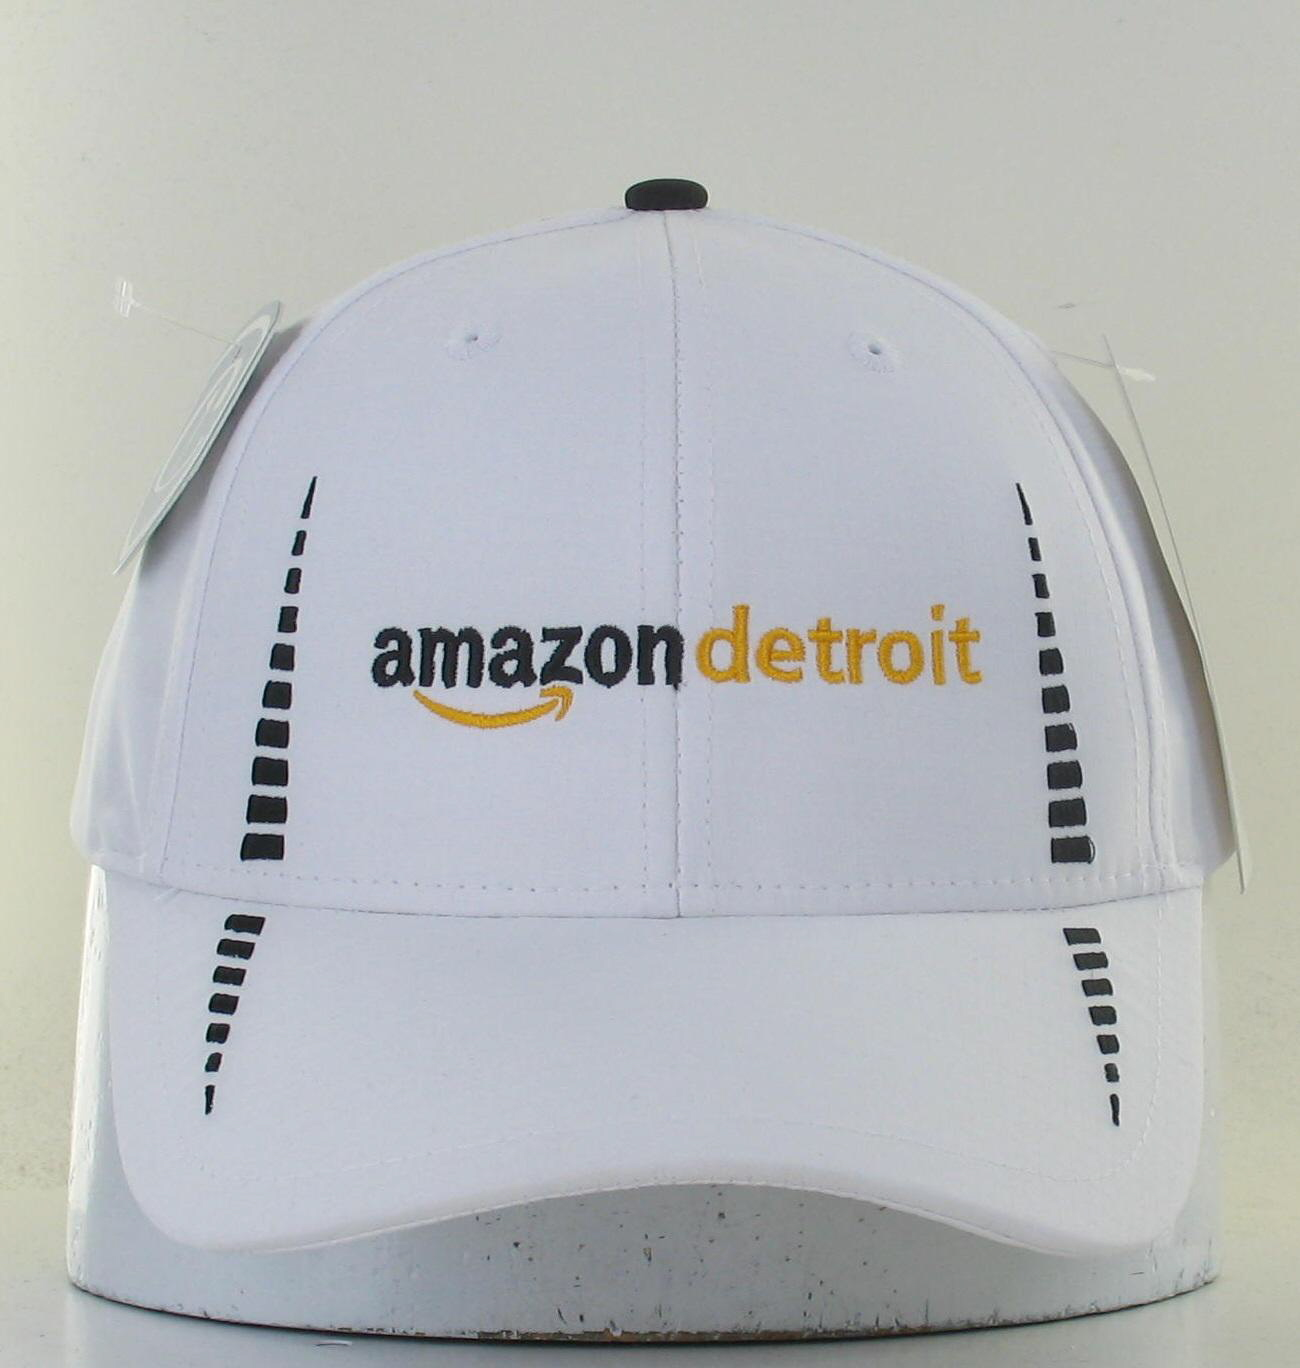 Amazon Detroit Cap